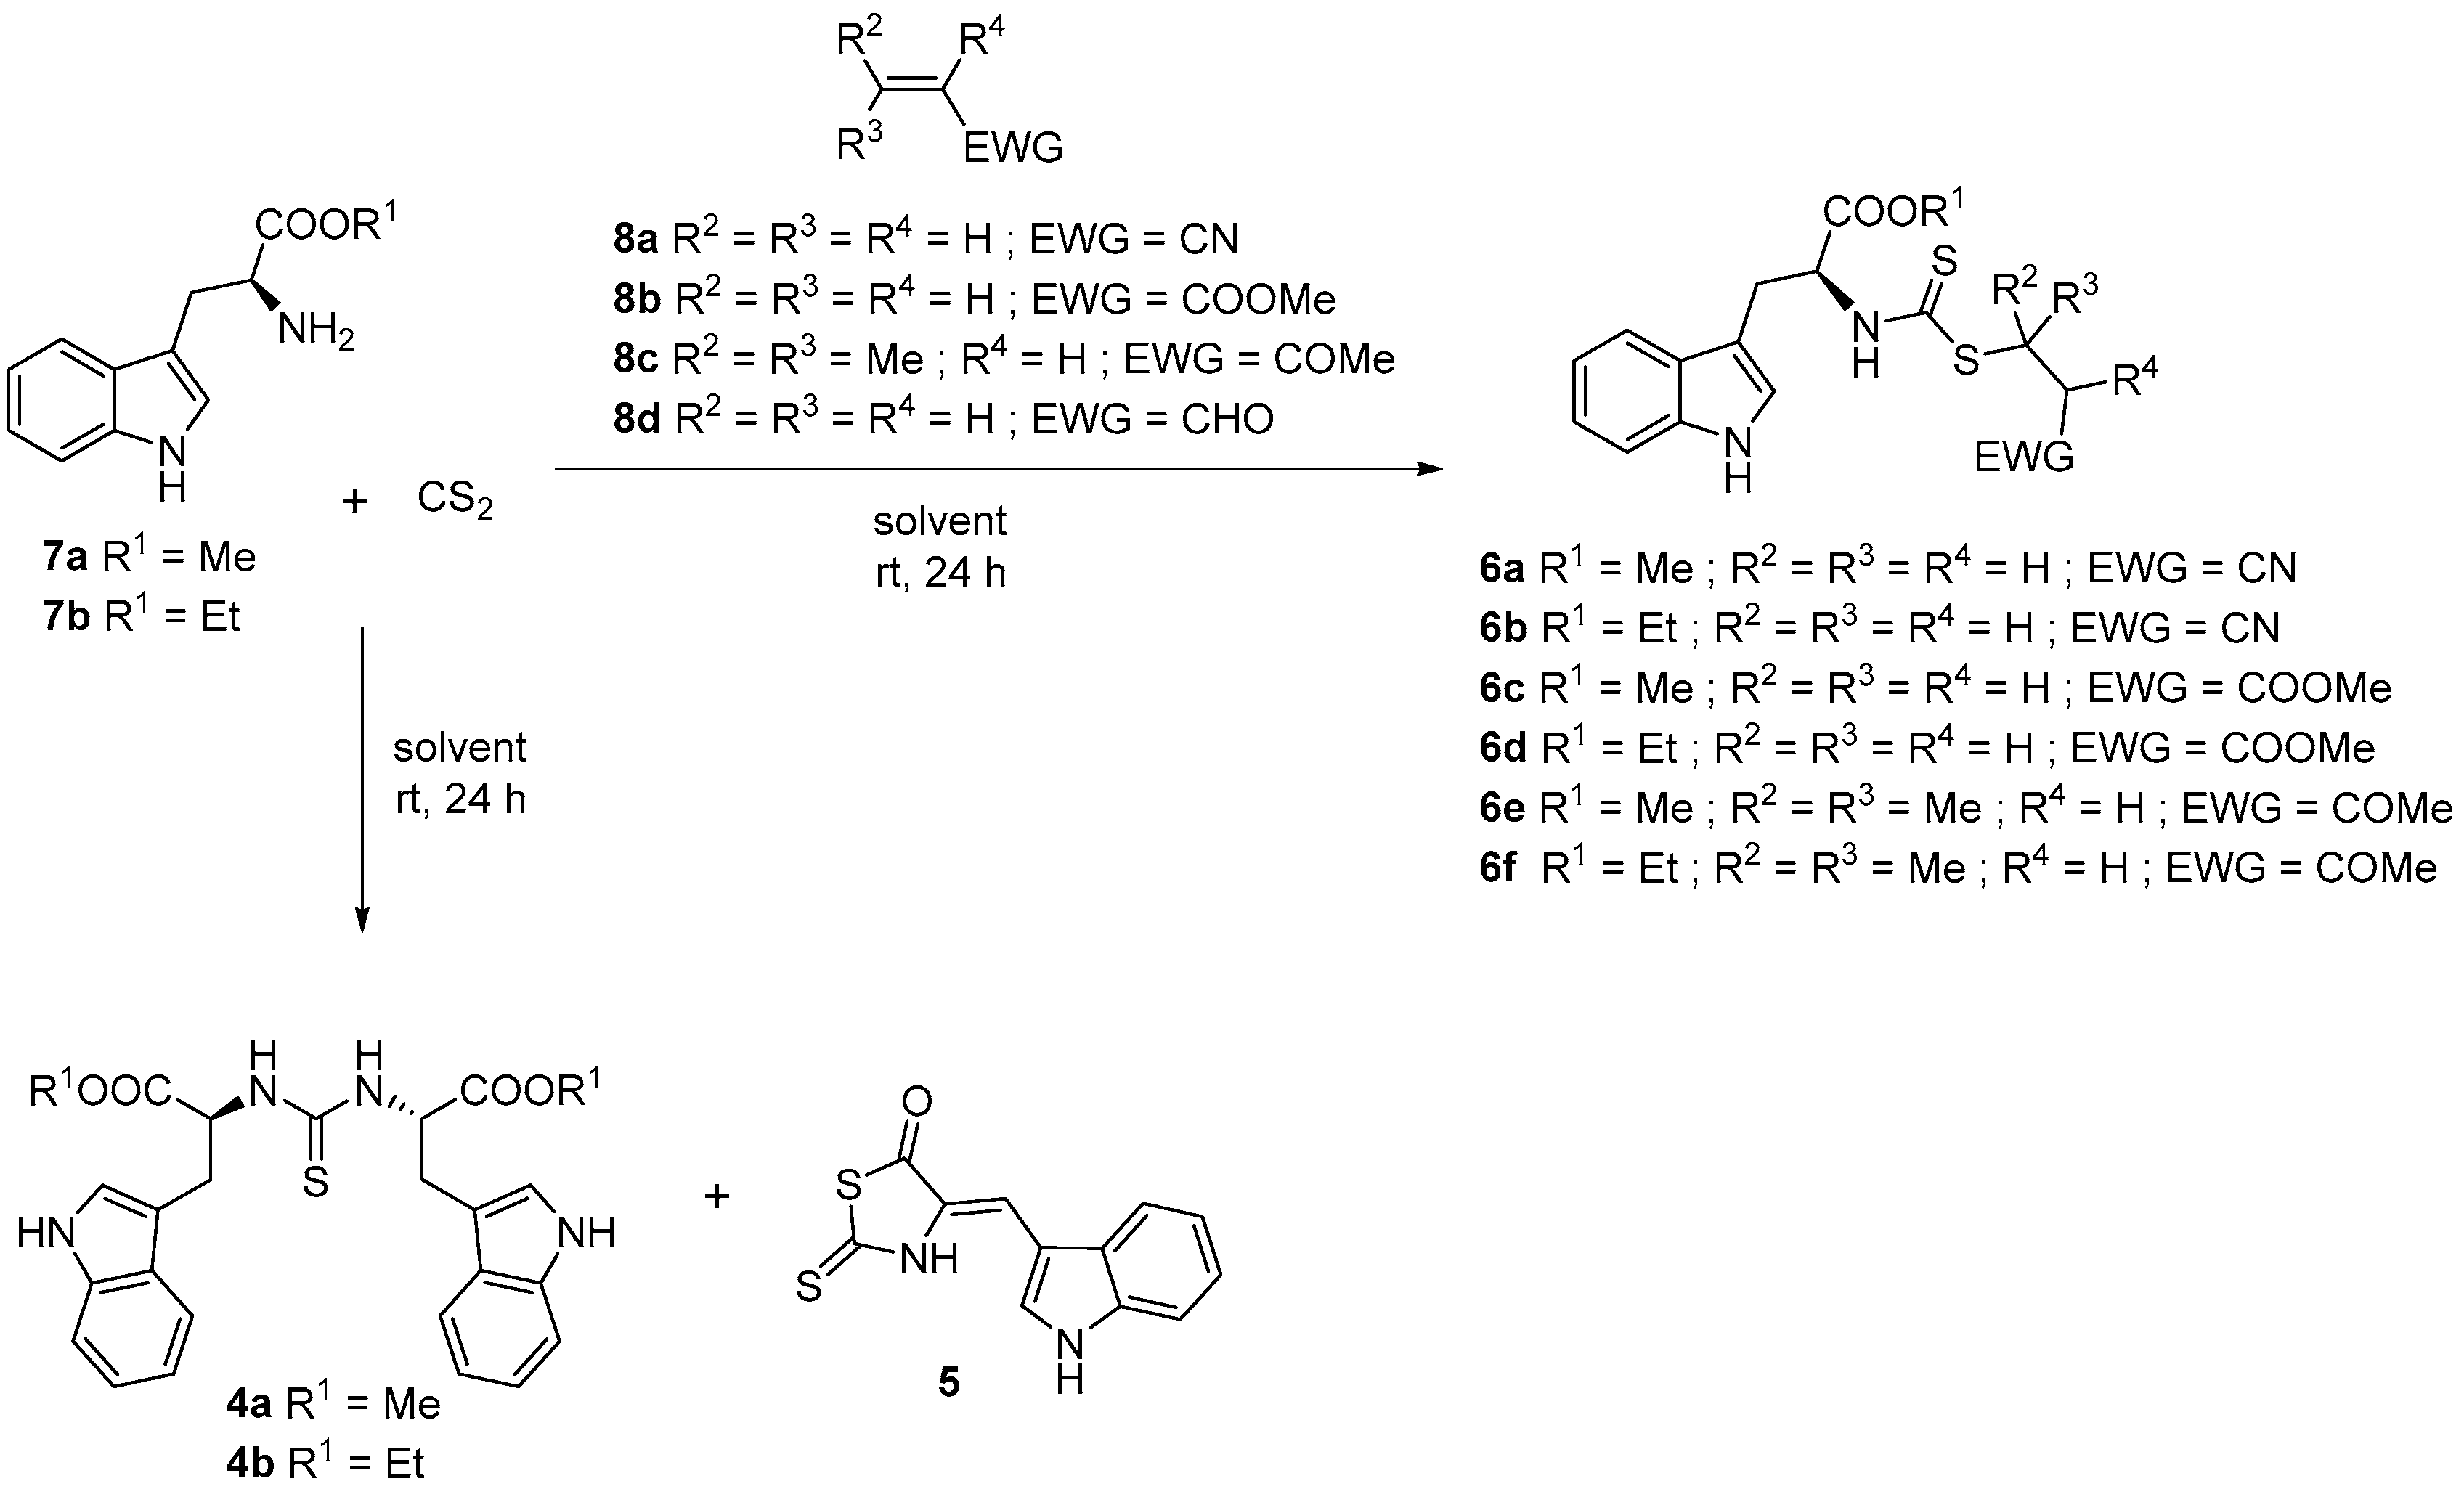 flagyl zoloft interactions